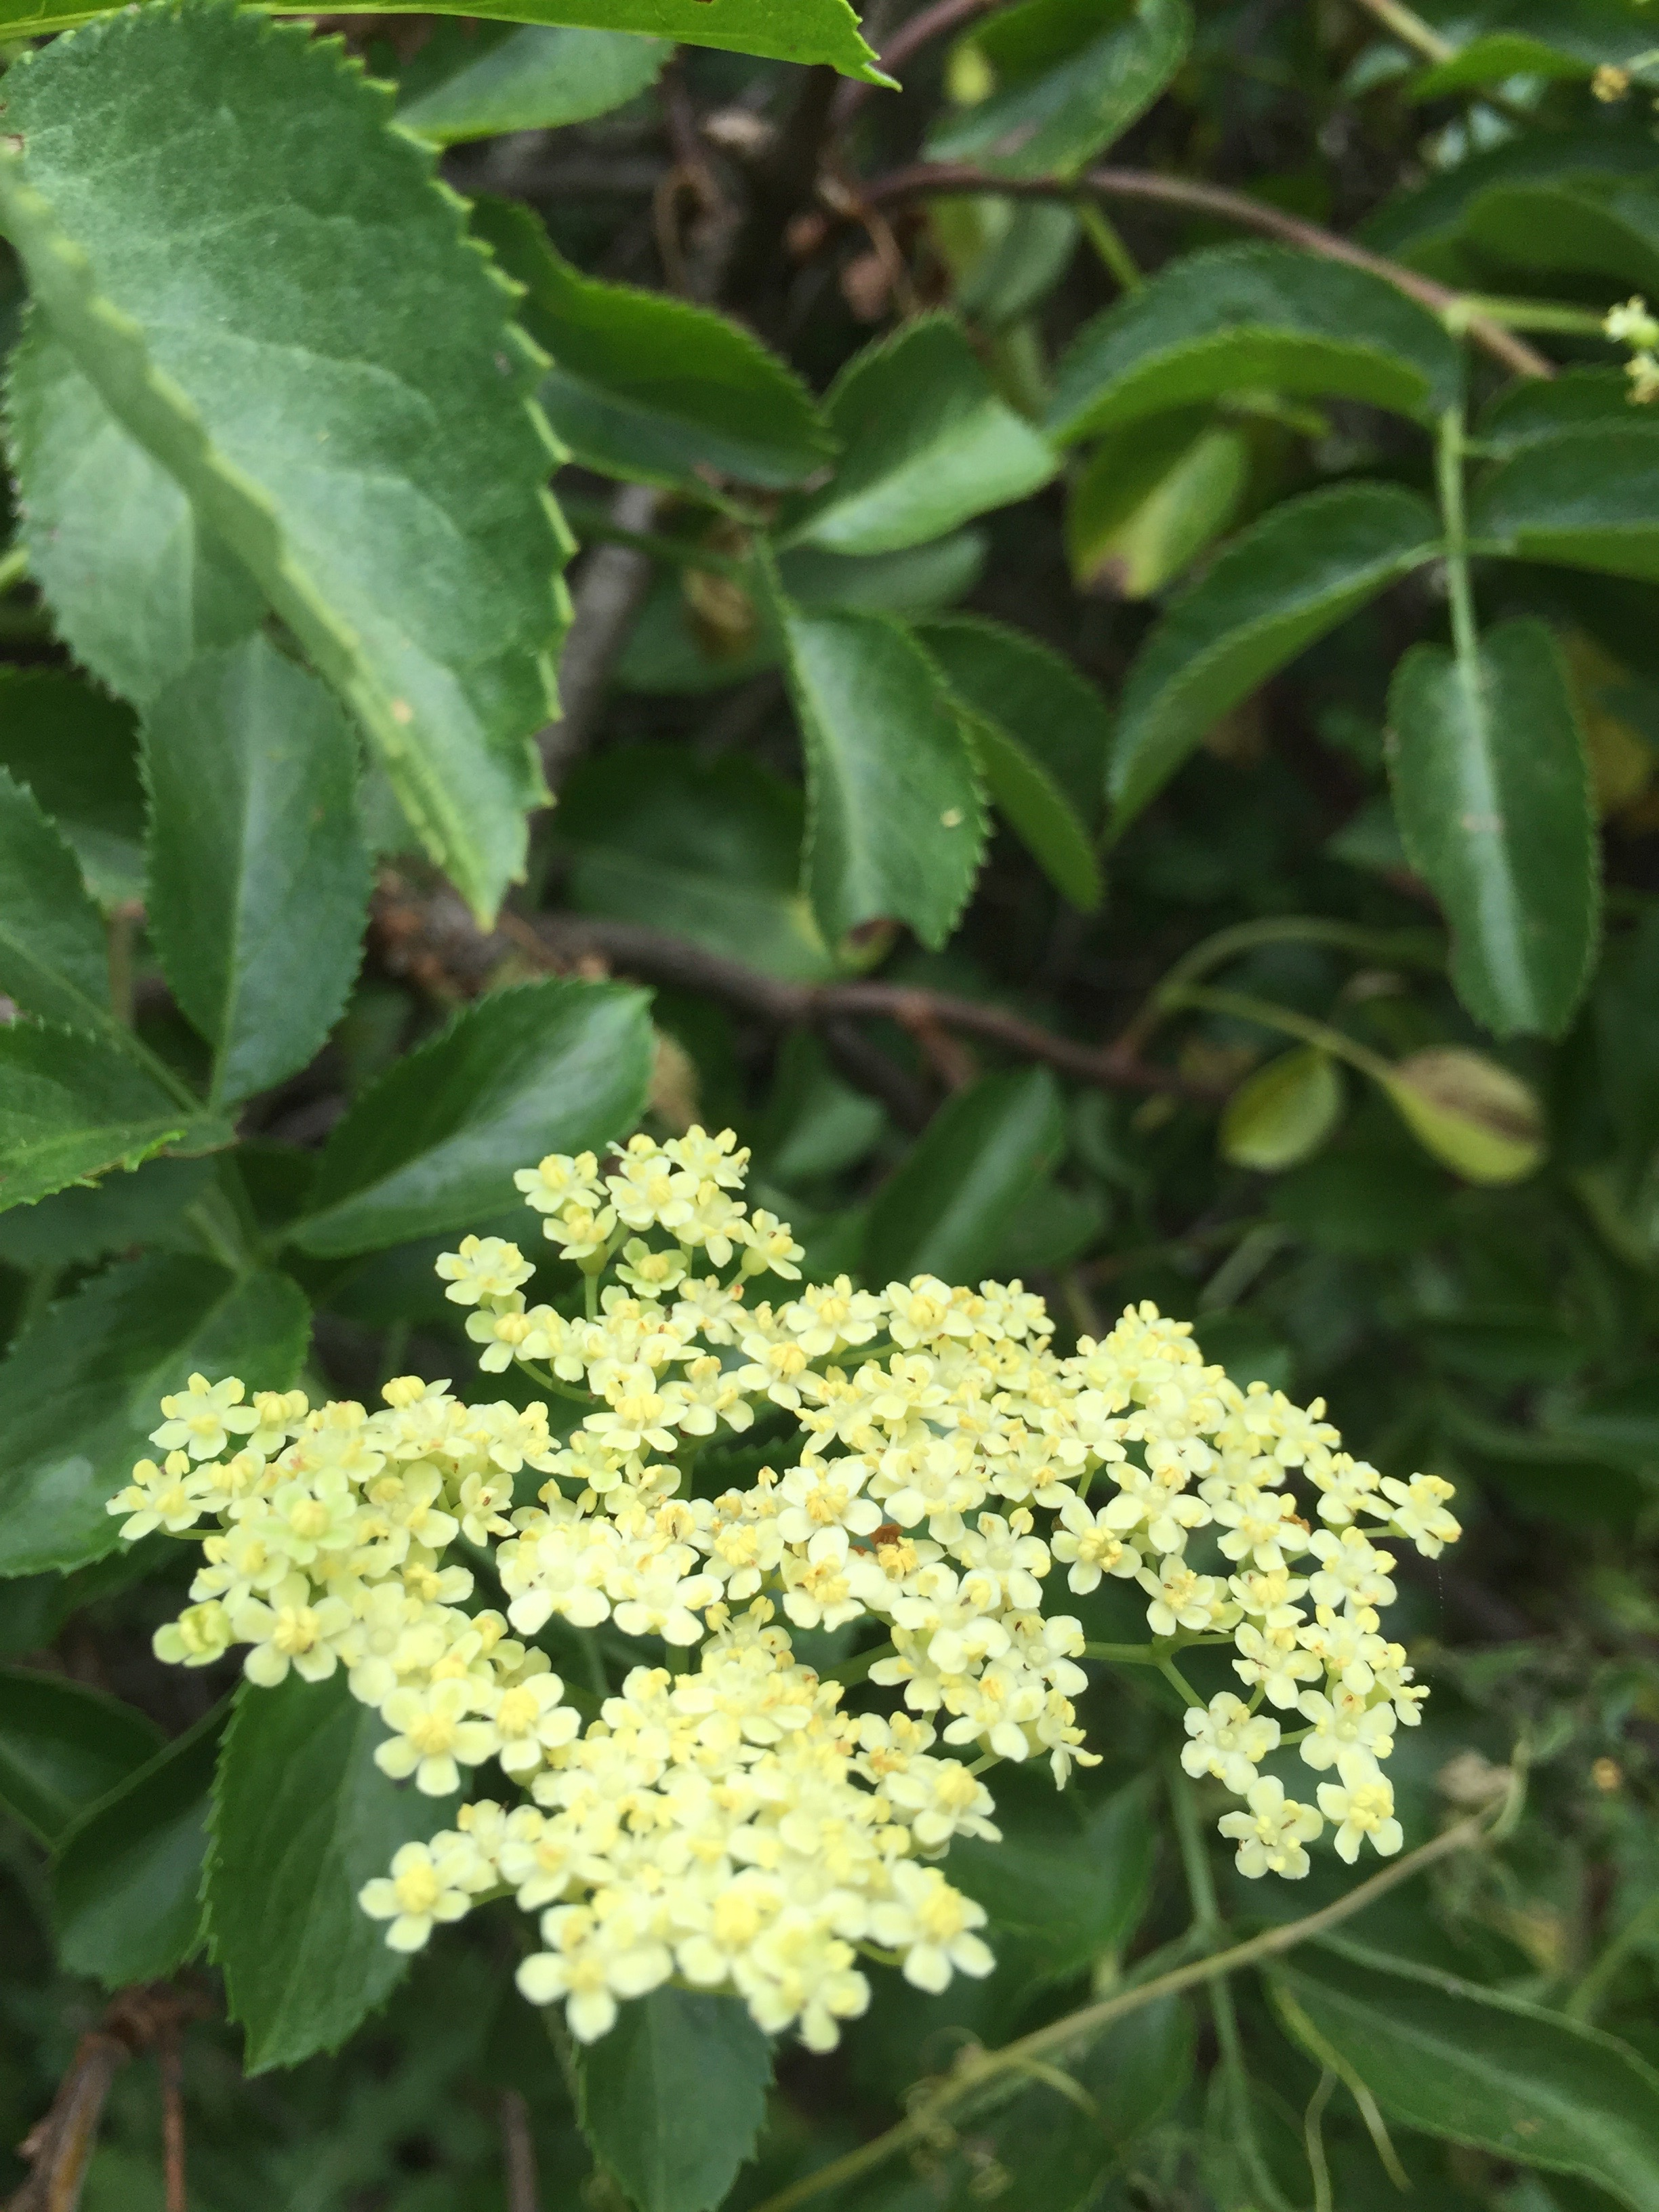 A native Elderberry tree in blossom